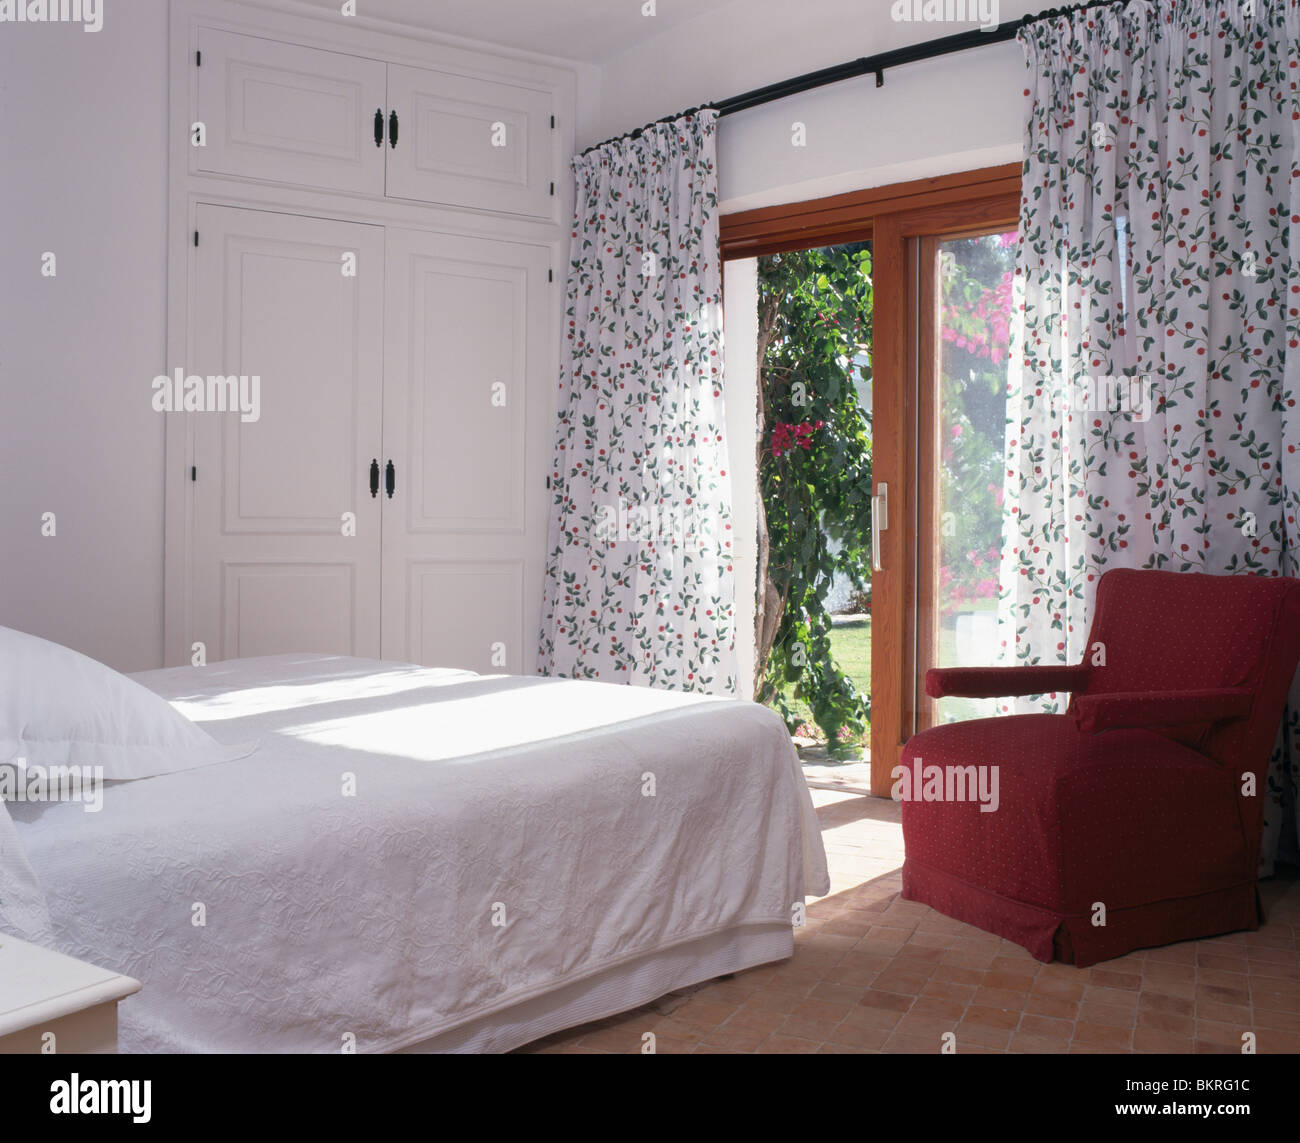 French Bedroom Black And White Teenage Bedroom Wallpaper Uk Wooden Bedroom Blinds Bedroom Oasis Decorating Ideas: Black+white Floral Curtains At French Windows In White